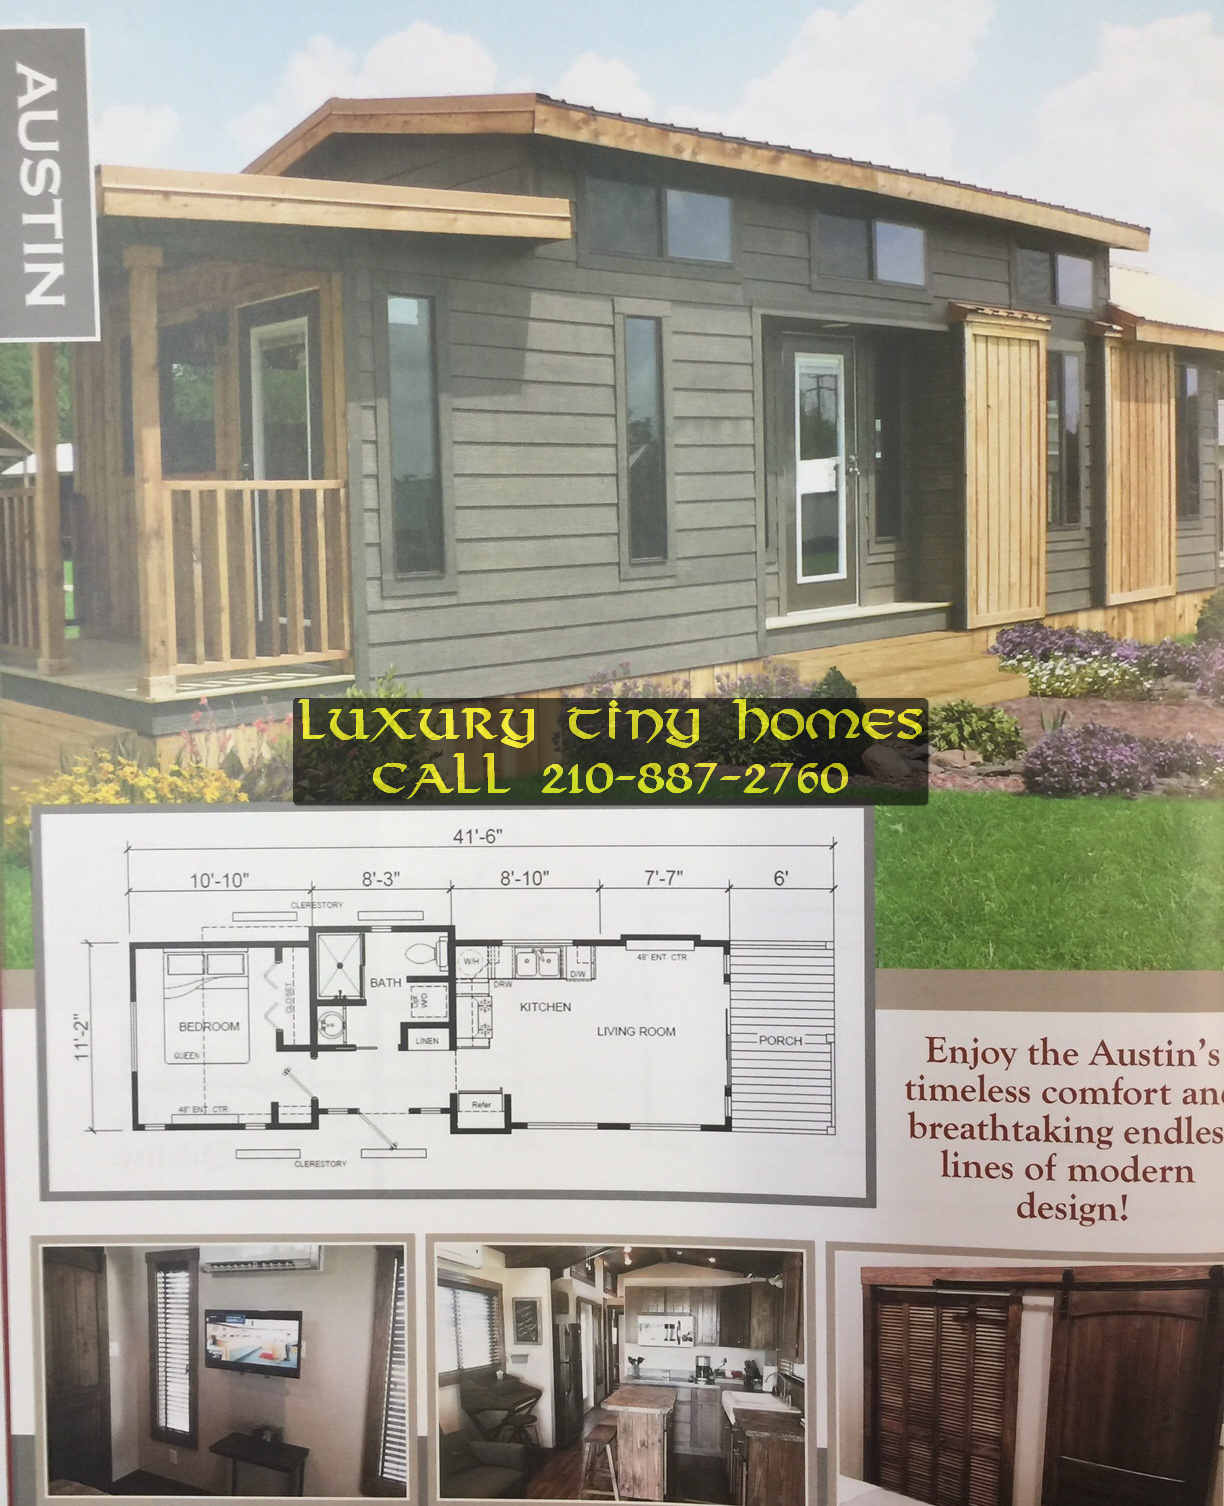 cabin-tiny-homes-call-210-887-2760